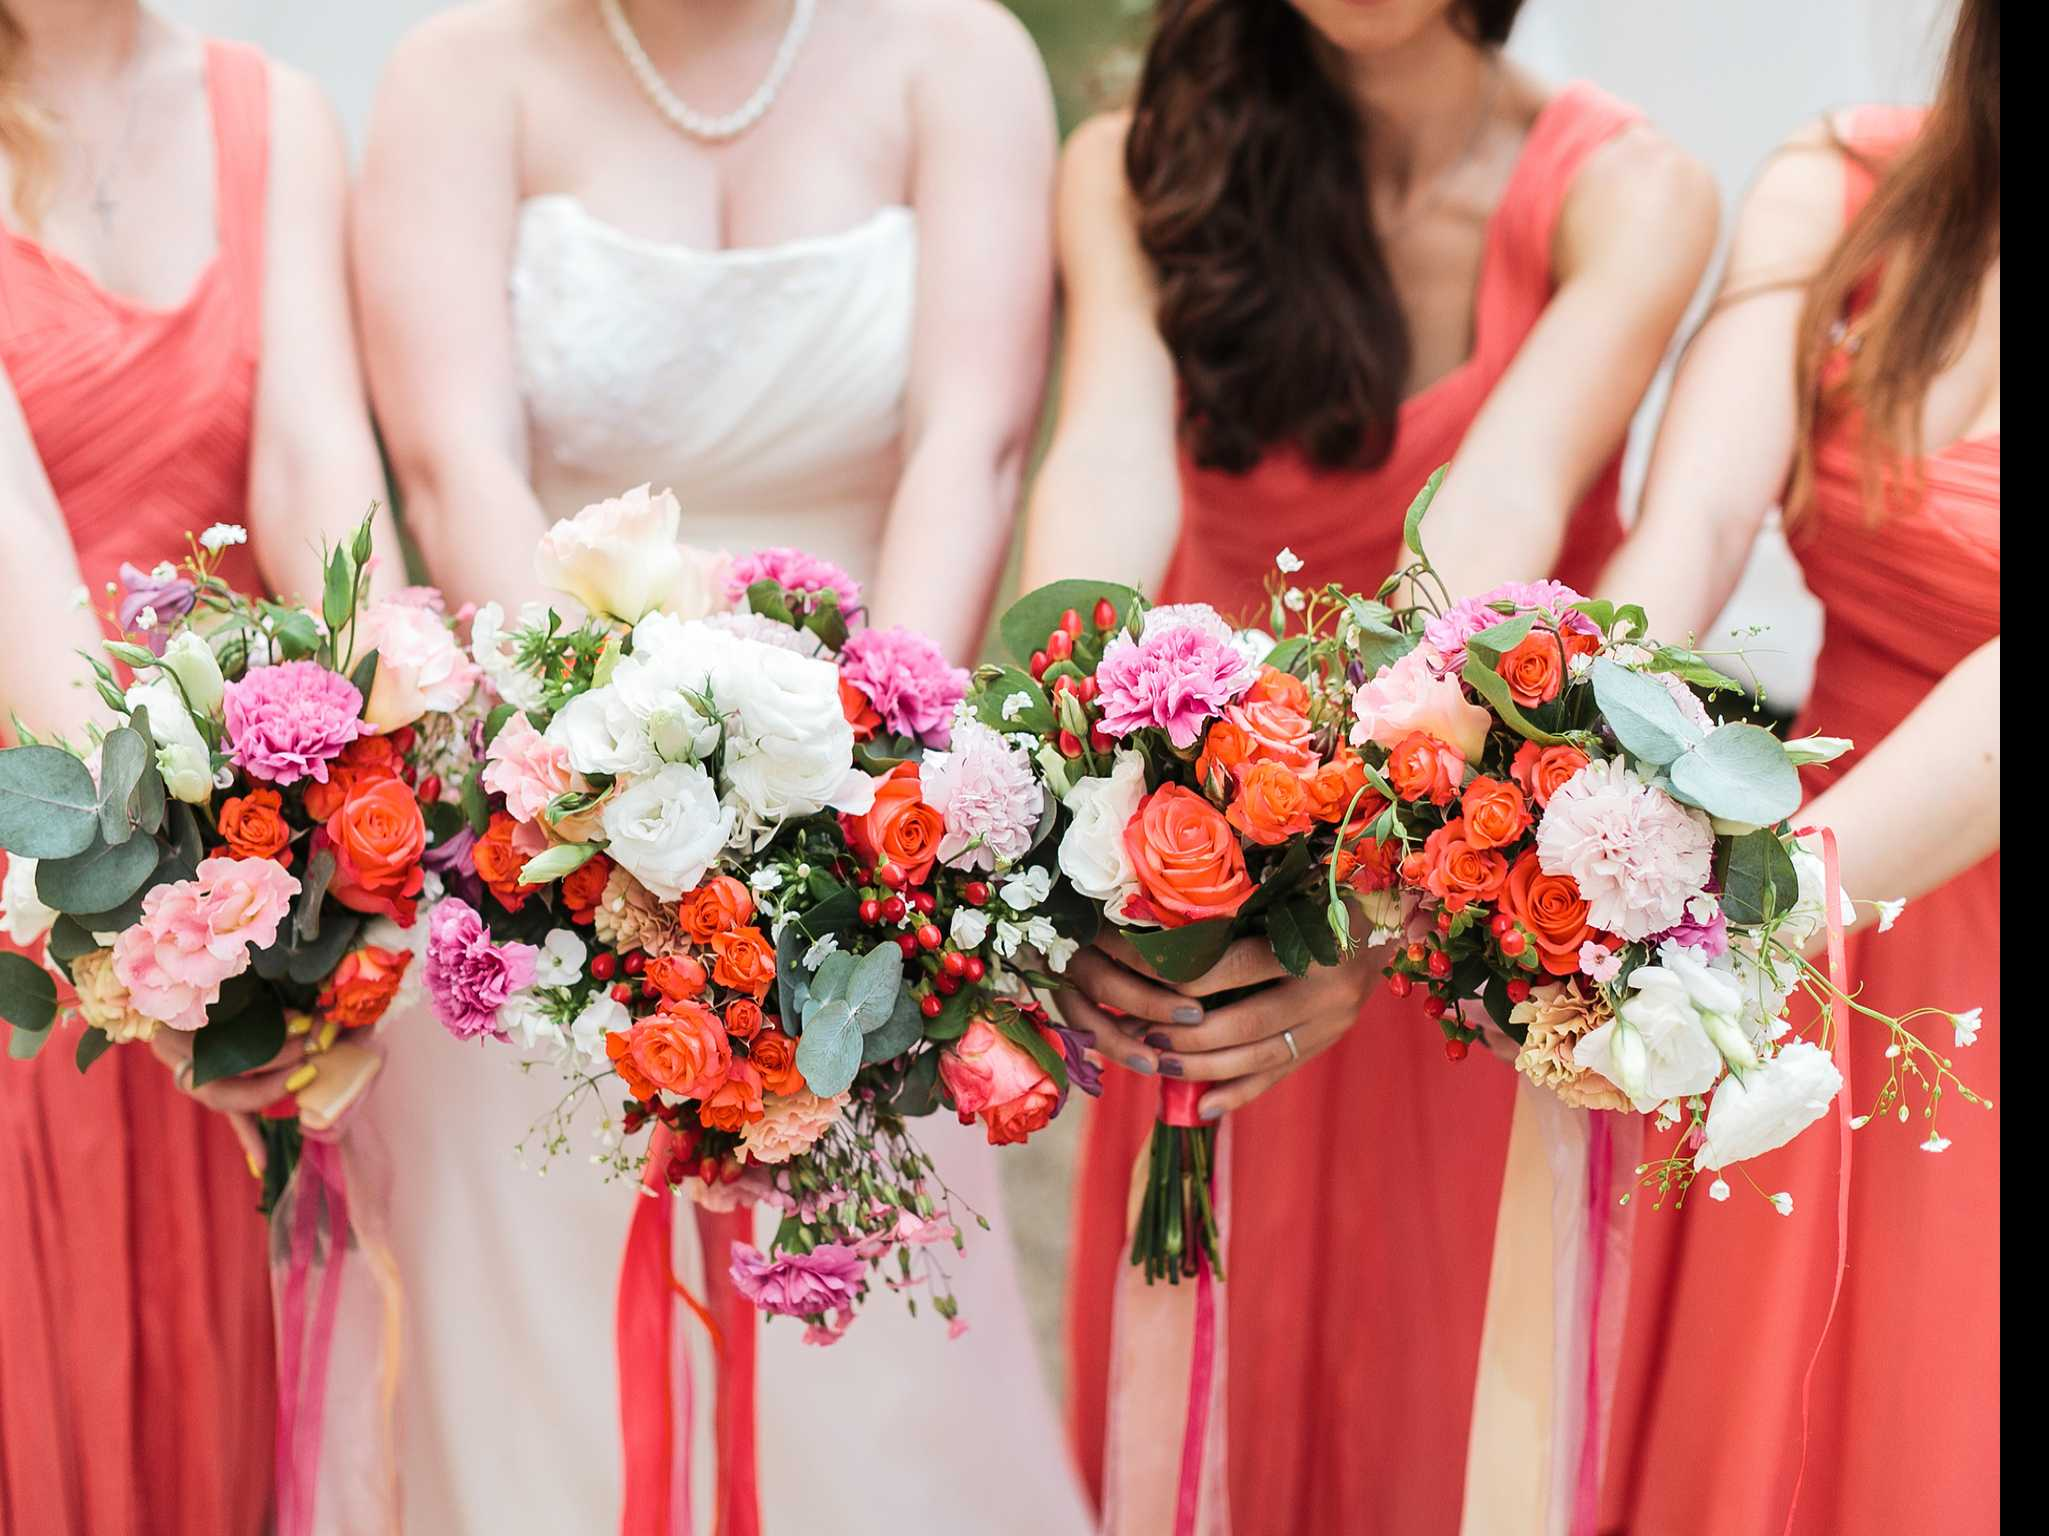 Ask Brianna: How to Say No to Being A Bridesmaid